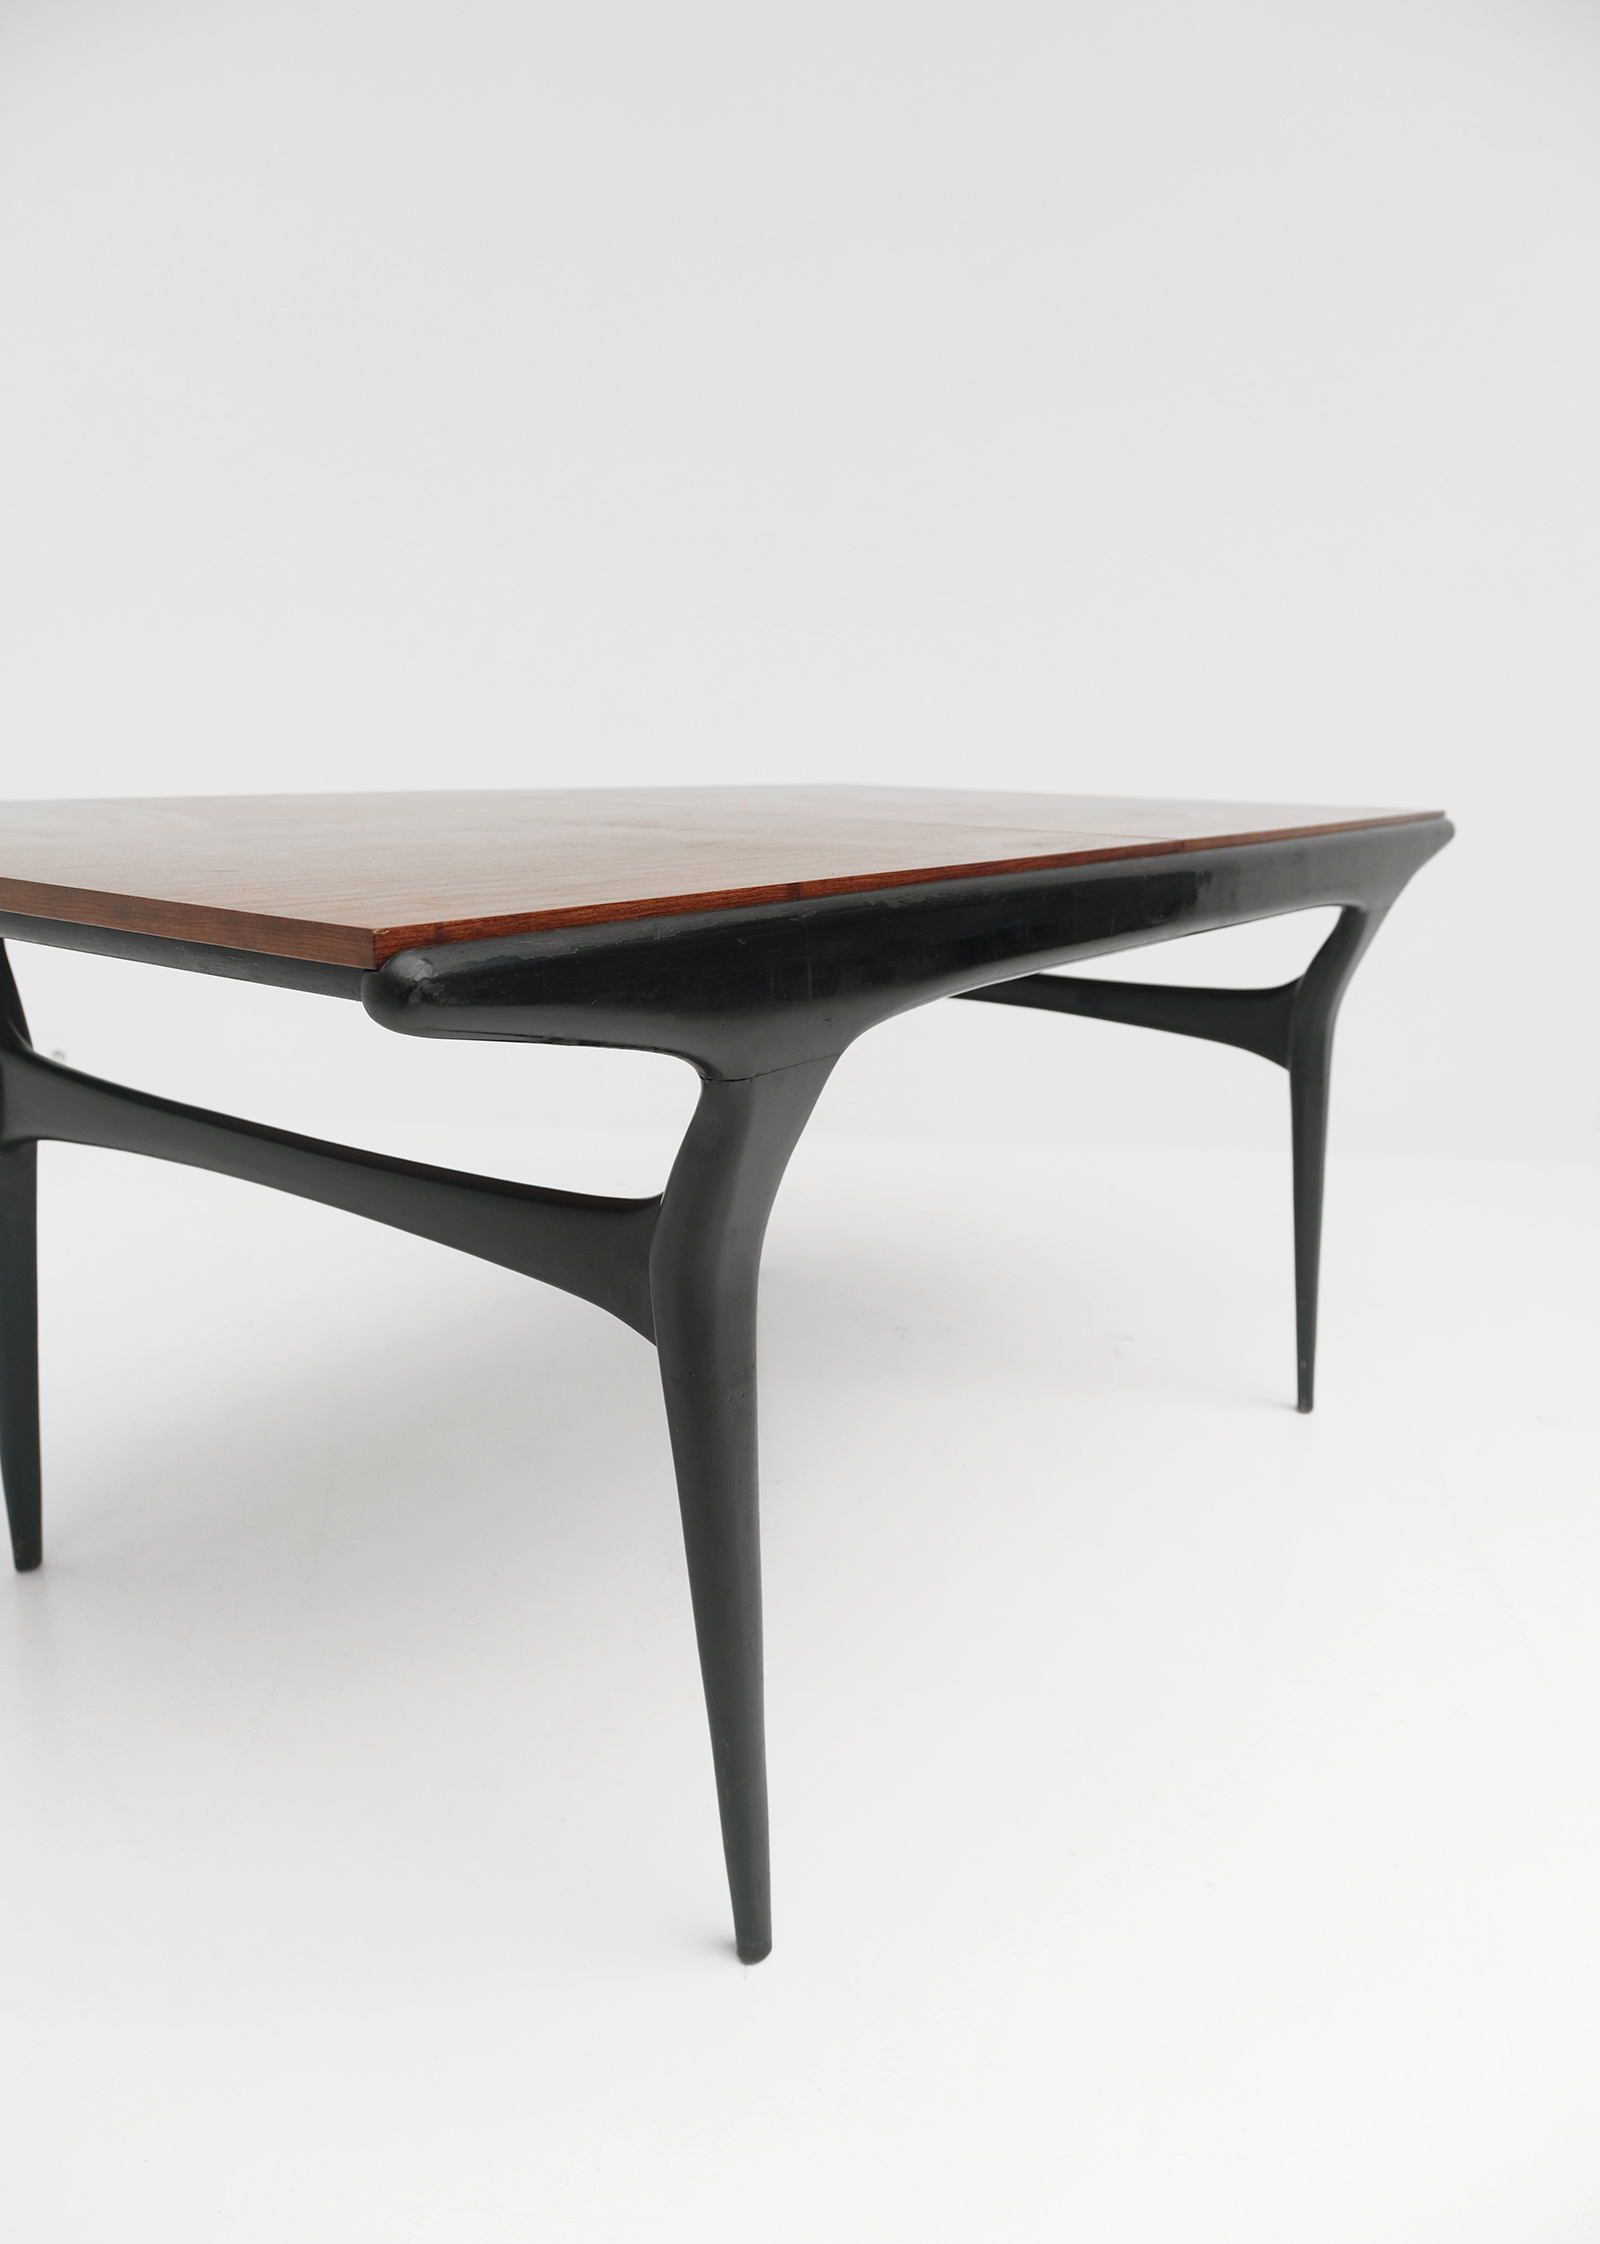 Alfred Hendrickx rare Belform Dining Table 1950s